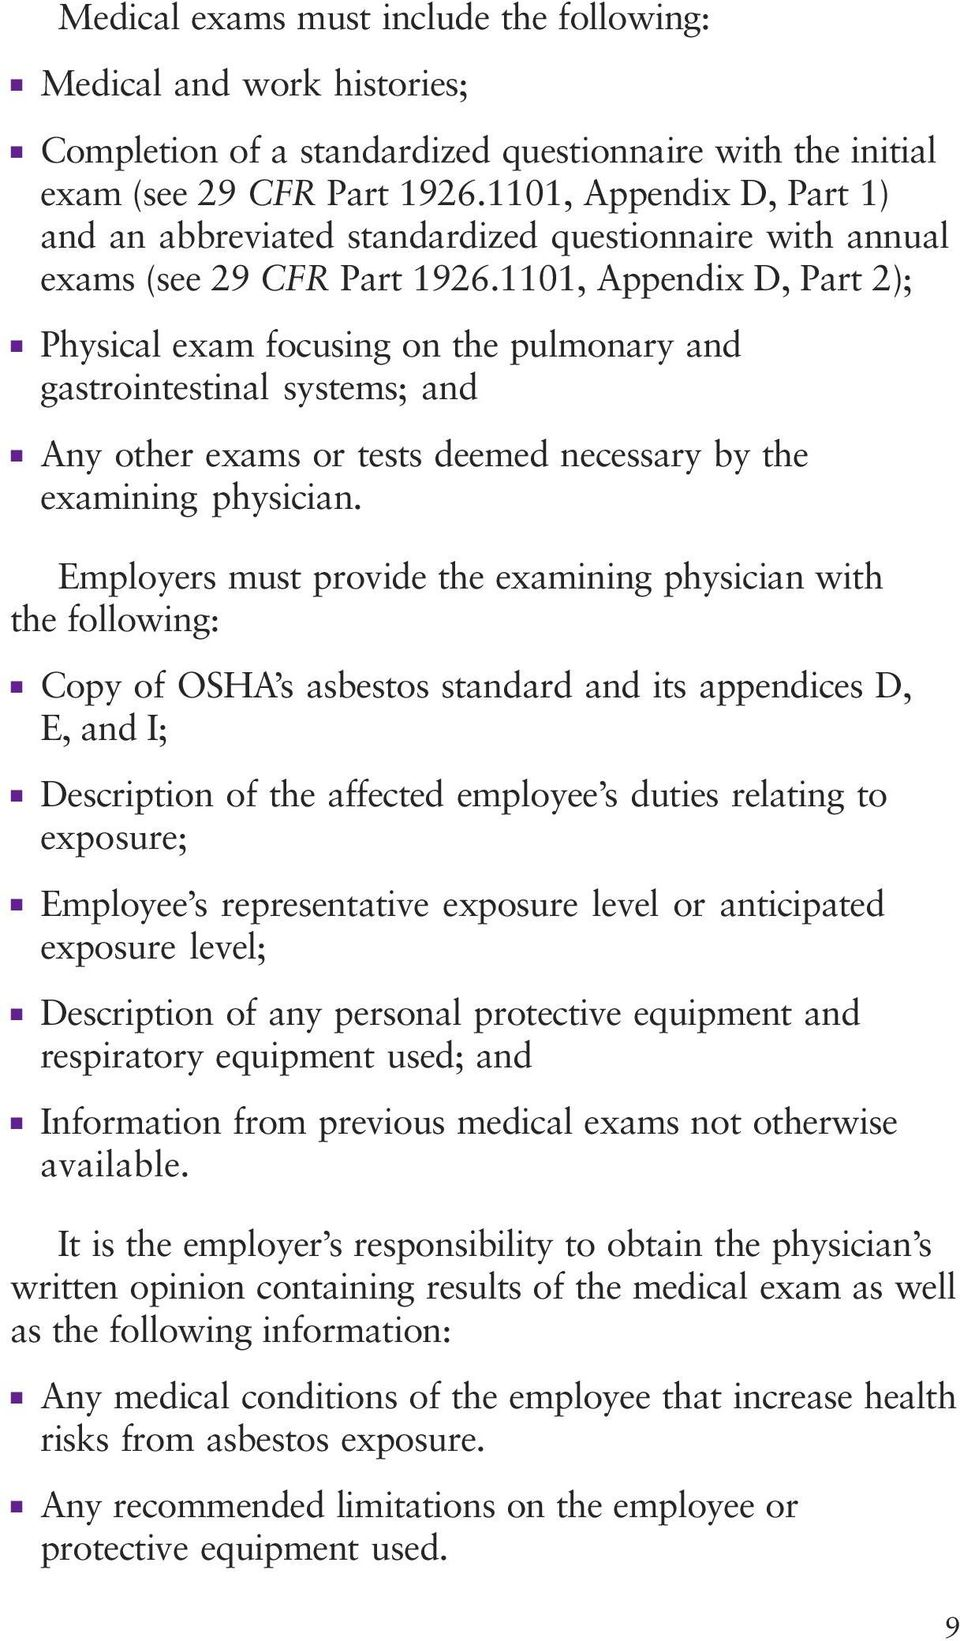 1101, Appendix D, Part 2); Physical exam focusing on the pulmonary and gastrointestinal systems; and Any other exams or tests deemed necessary by the examining physician.